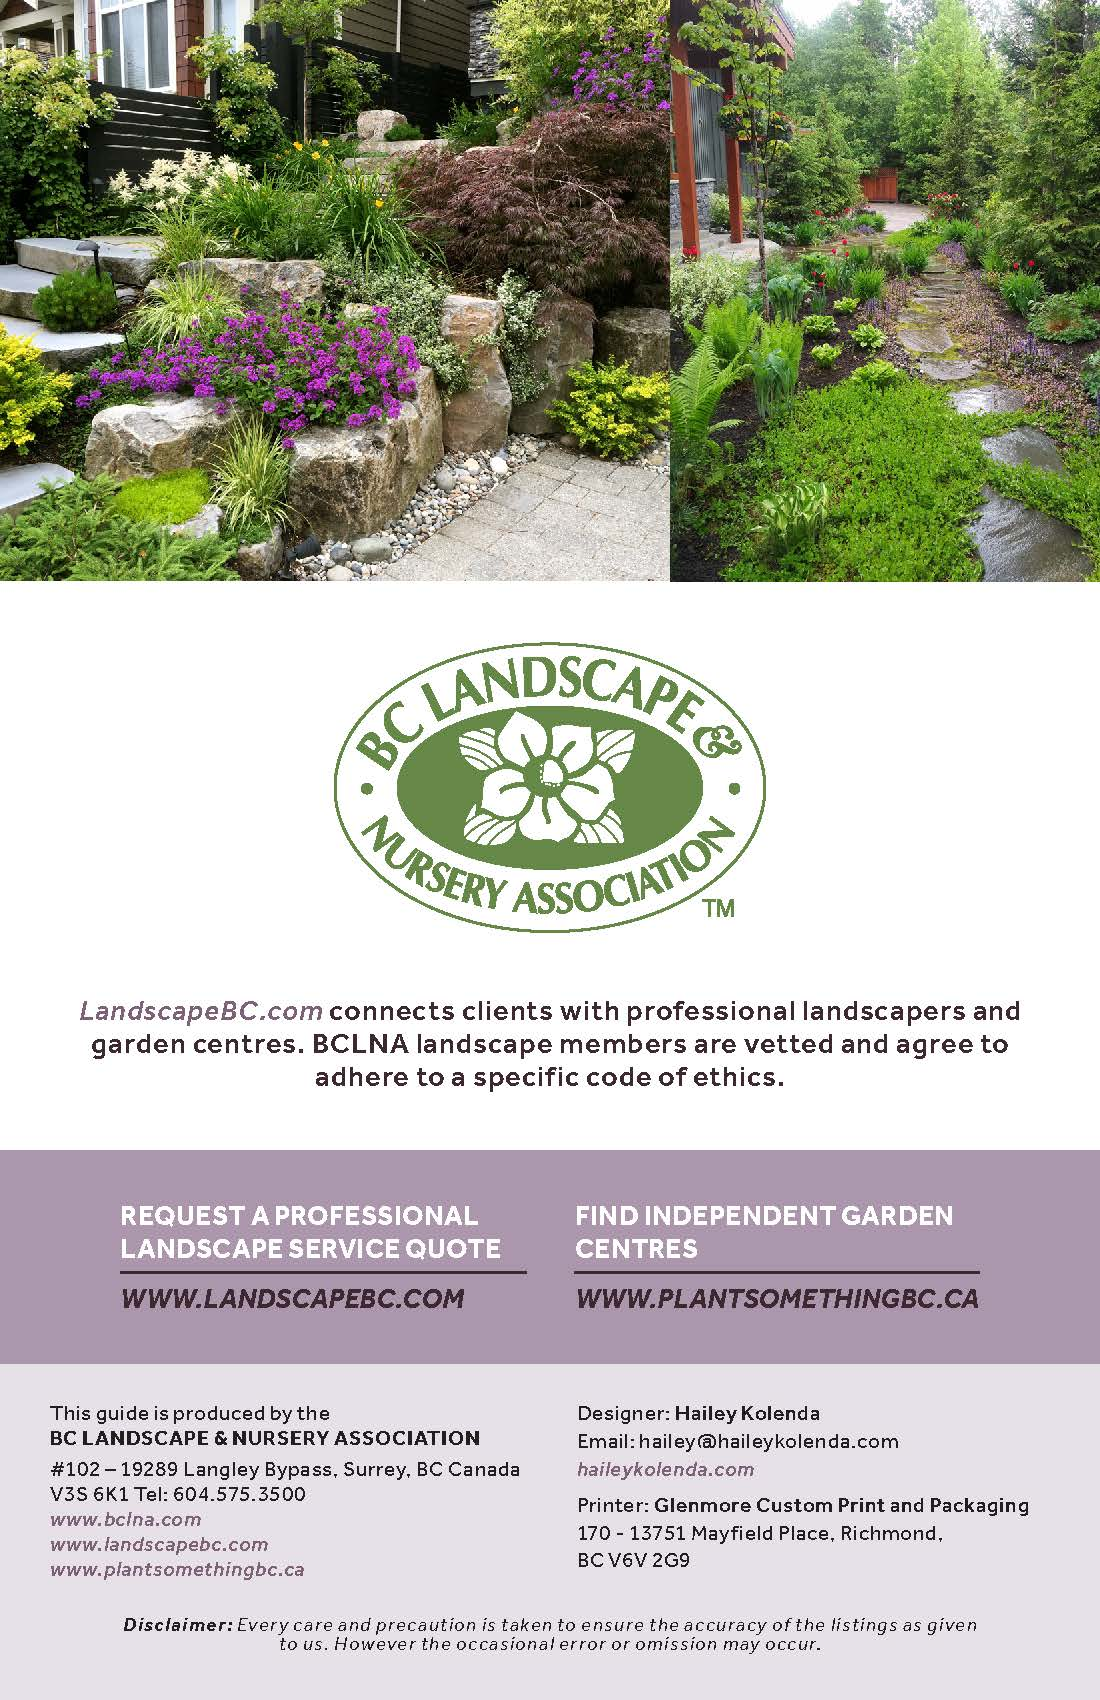 BCLNA_GardenWise_Booklet_FA_ReaderSpreads_Page_17.jpg